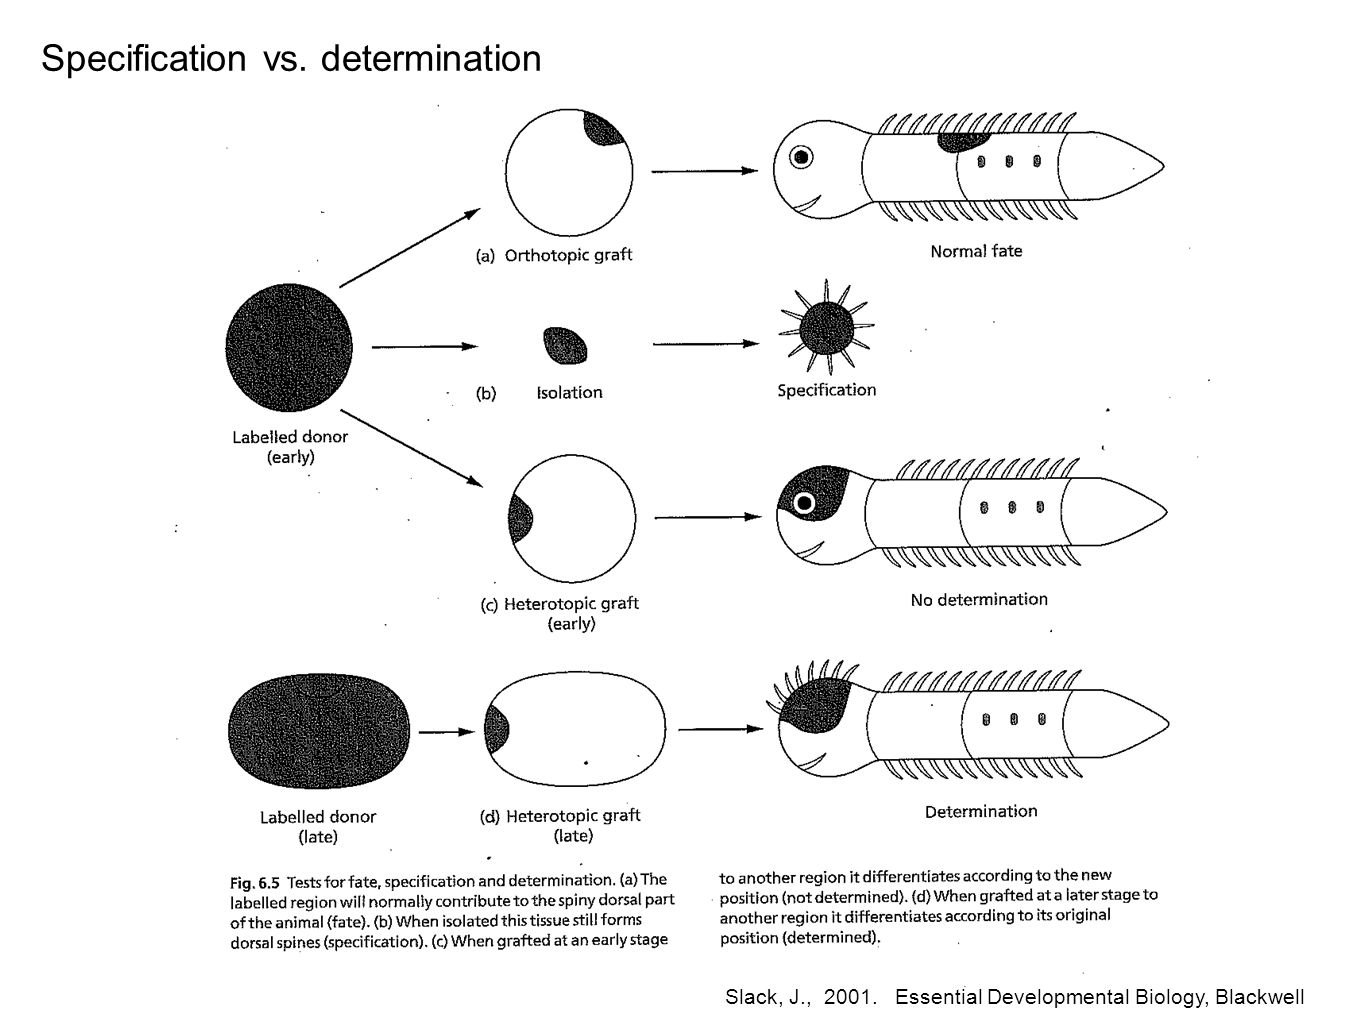 Slack, J., 2001. Essential Developmental Biology, Blackwell Specification vs. determination